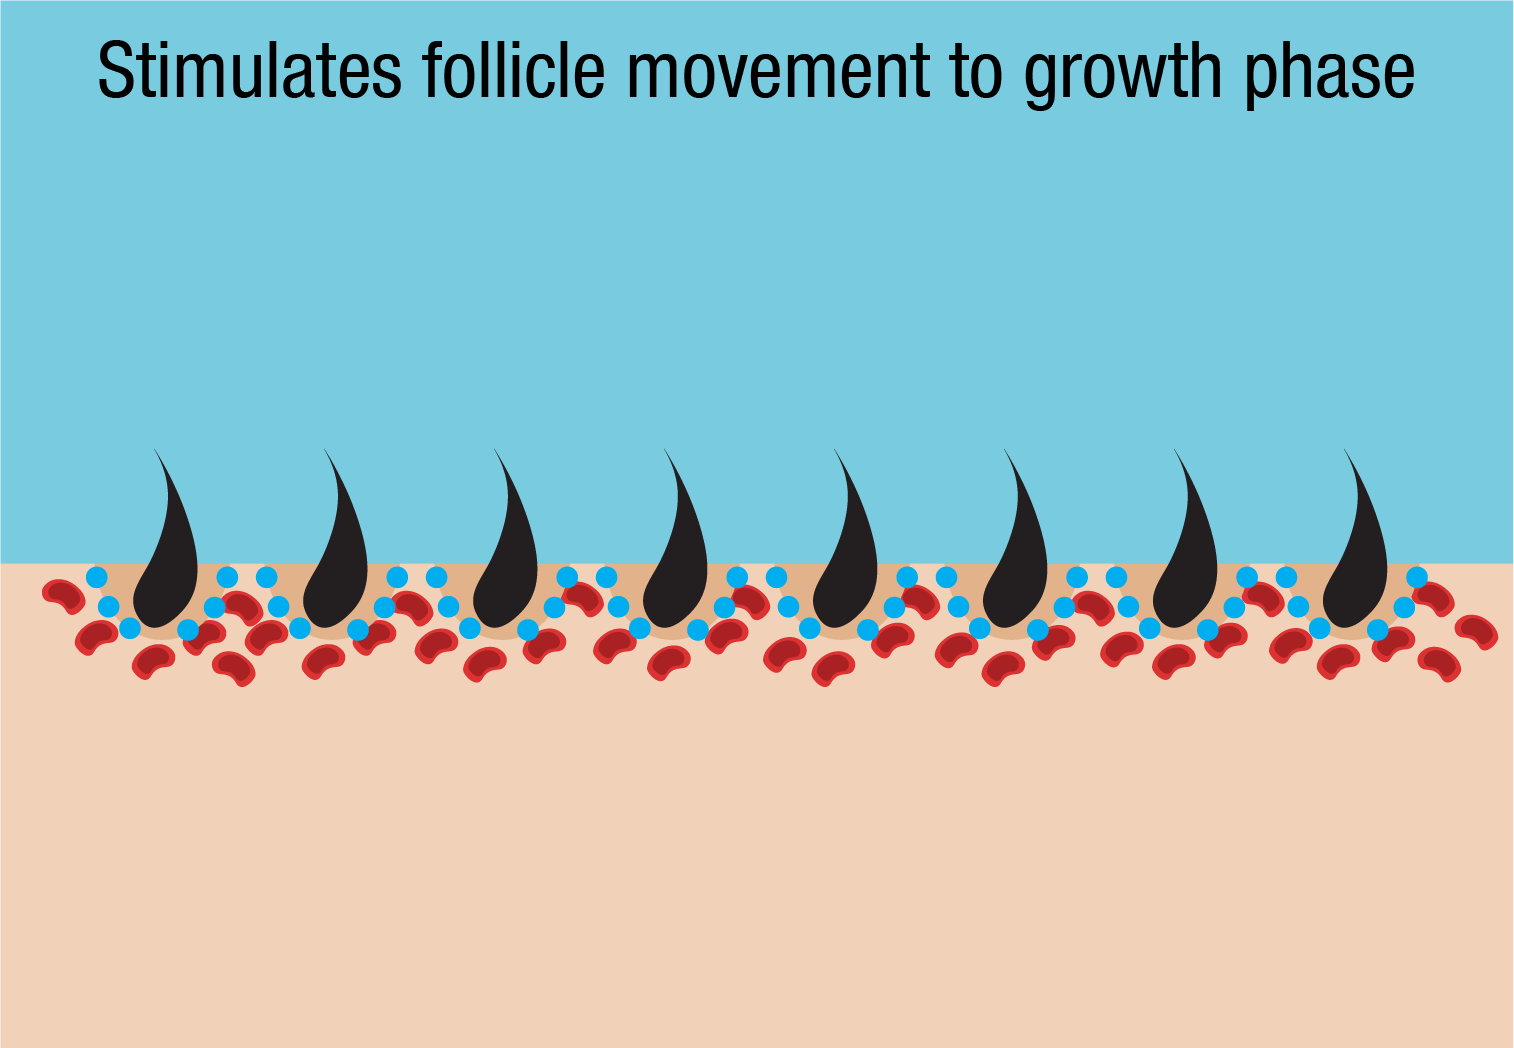 stimulate follicle movement to growth phase